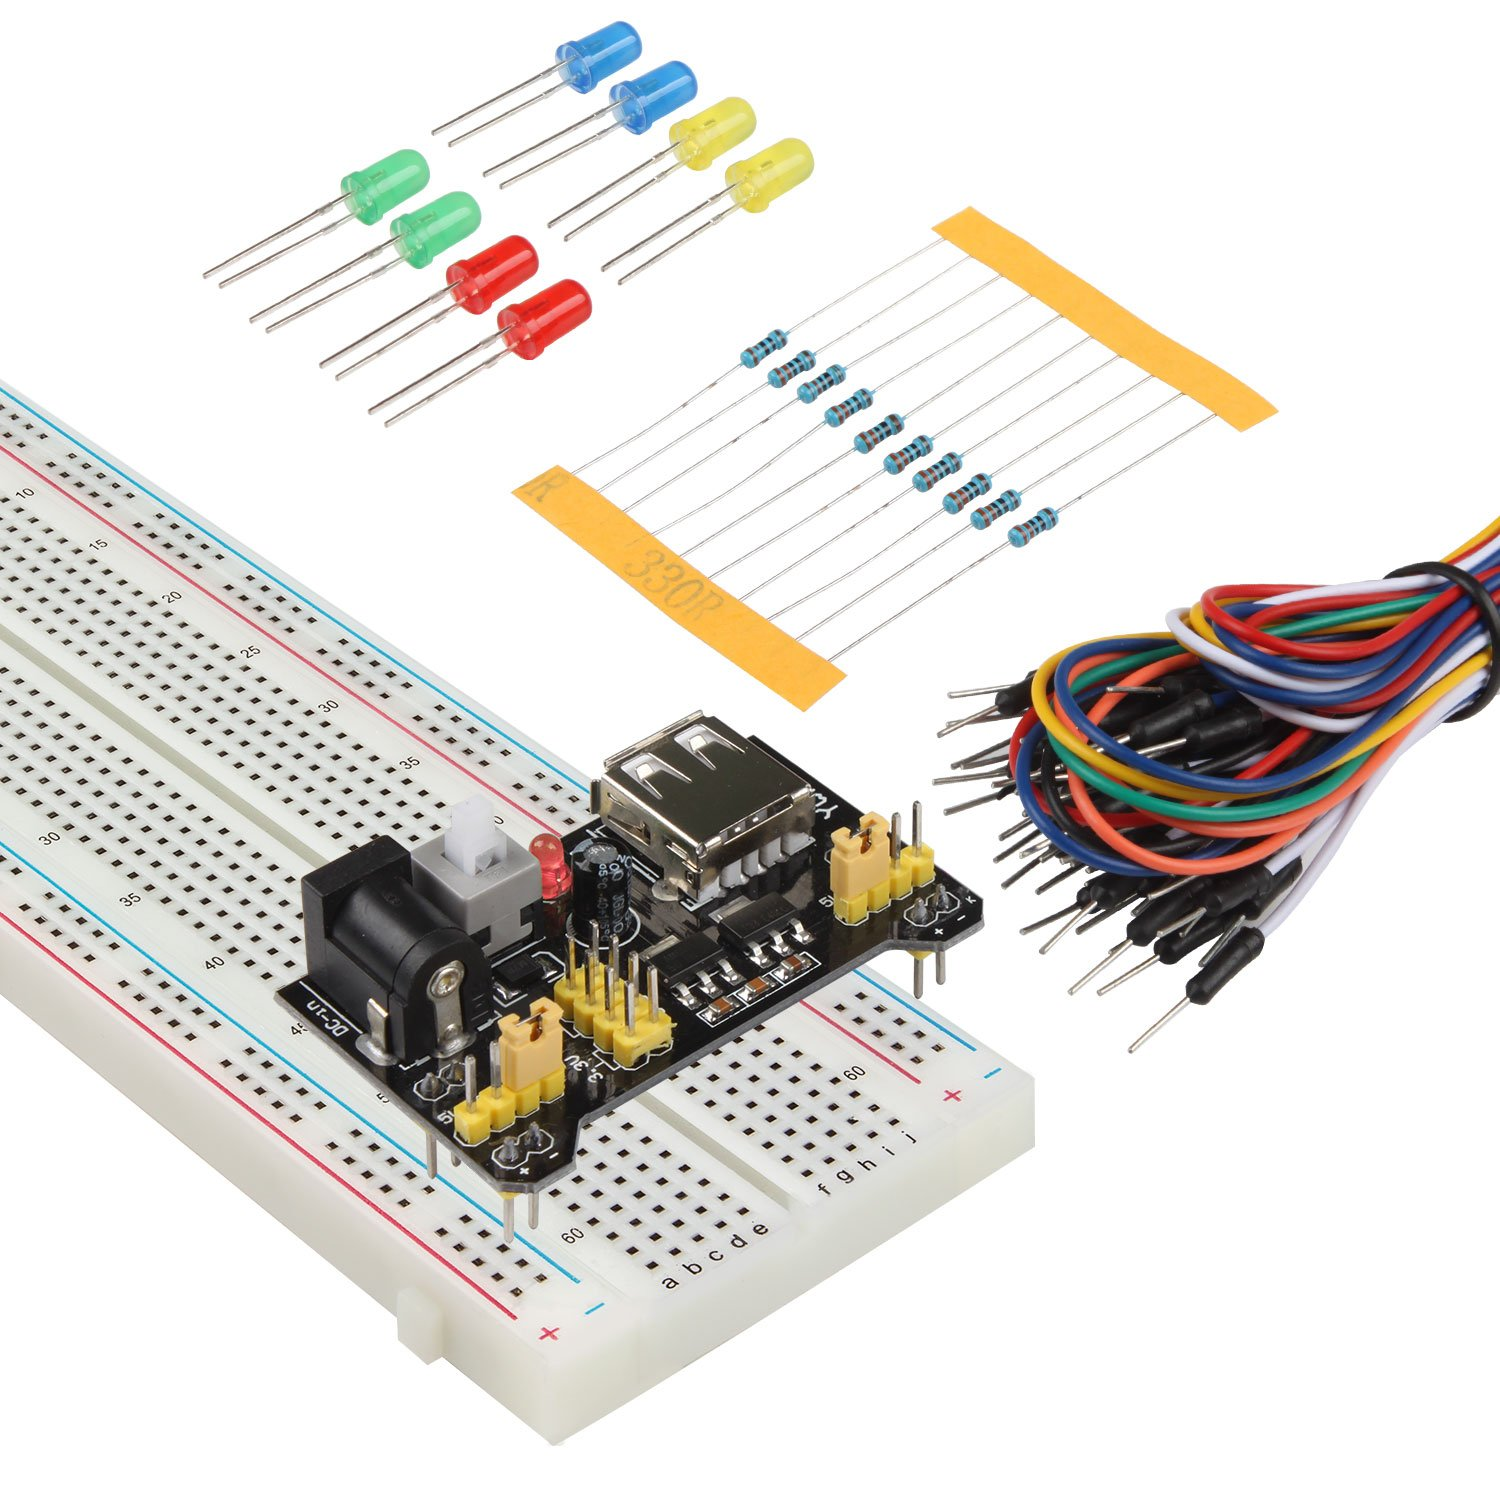 Smraza 33v 5v Power Supply Module For Arduino 830 Tie Breadboards Electronics Images Points Solderless Breadboard 65pcs Jumper Wire Uno Mega2560 Computers